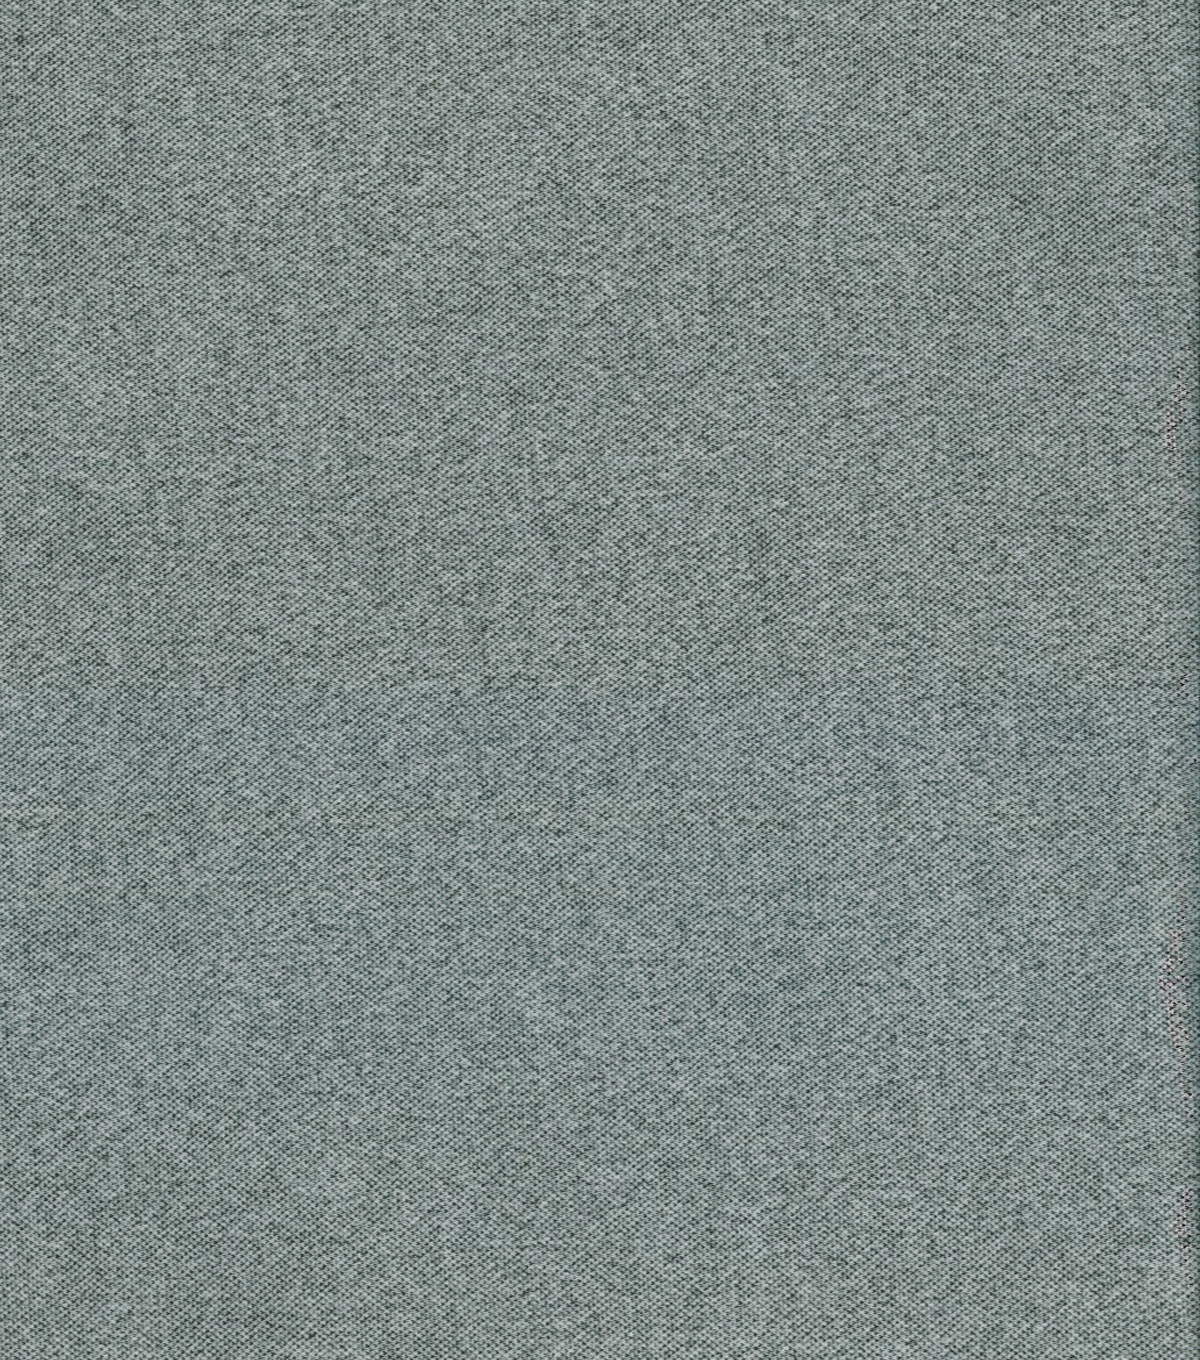 Sew Classics Cotton- Sueded Knit Gray Fabric